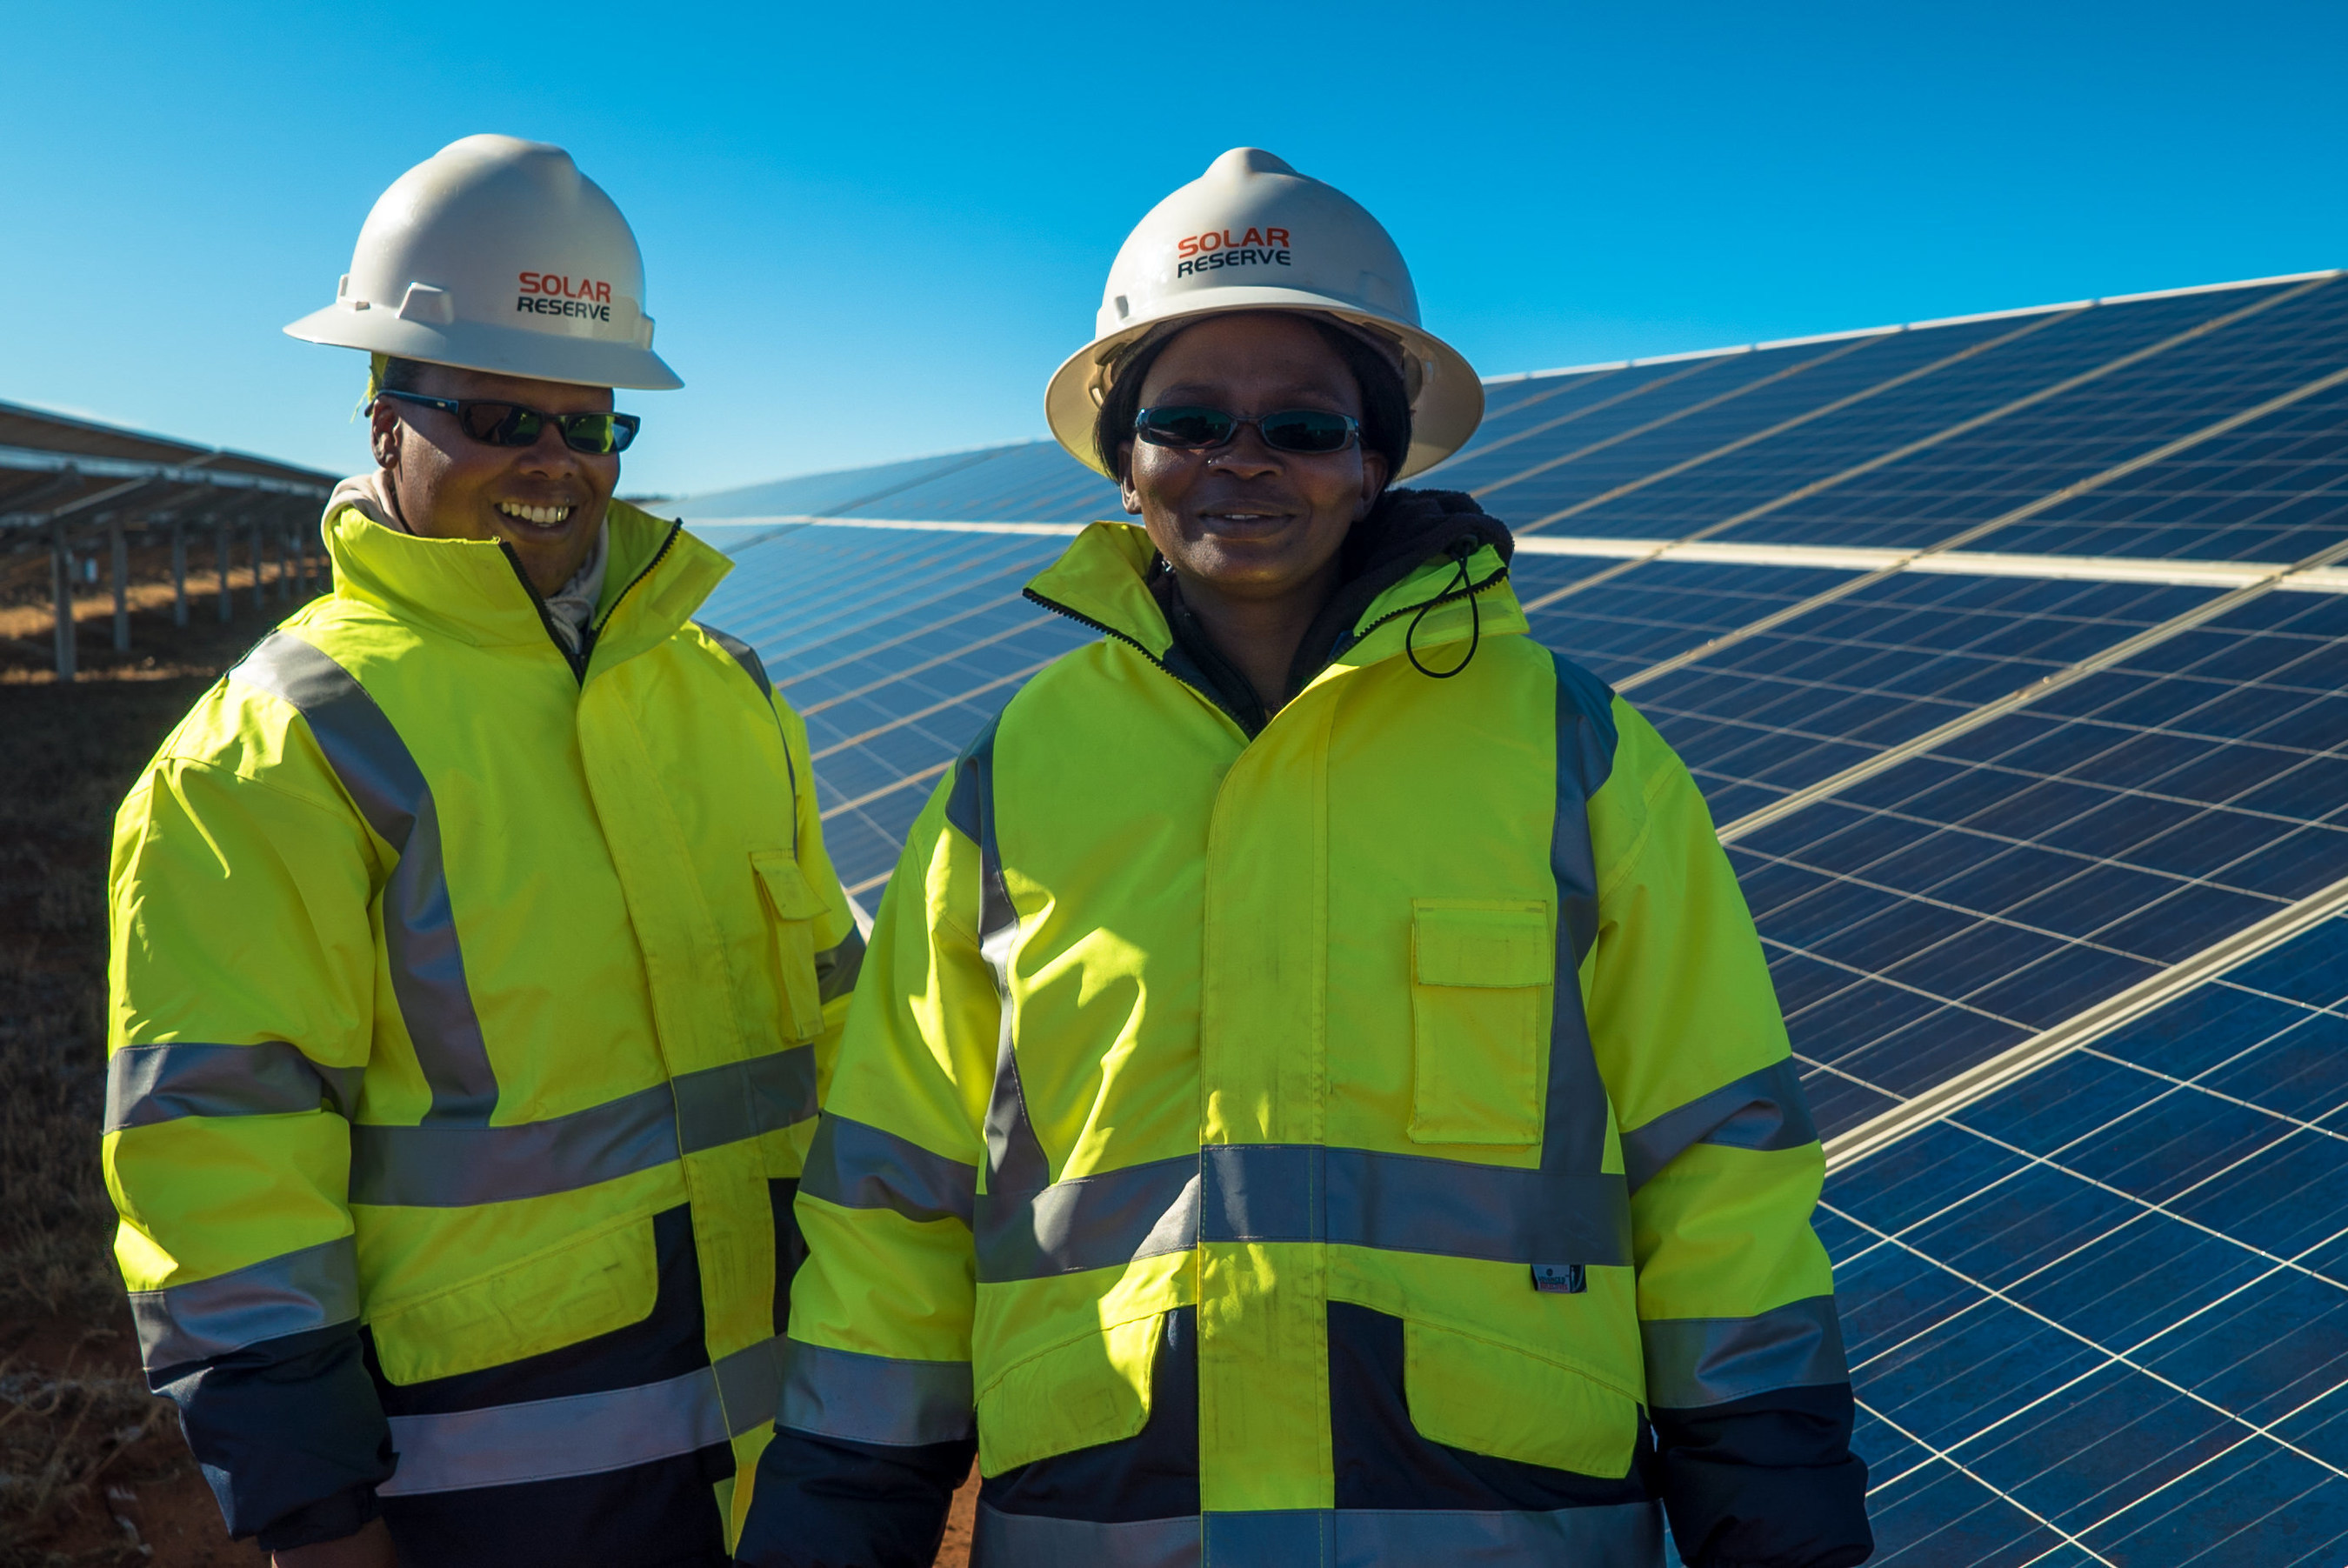 Urban Solar Farms will incorporate the integration of solar power with energy storage